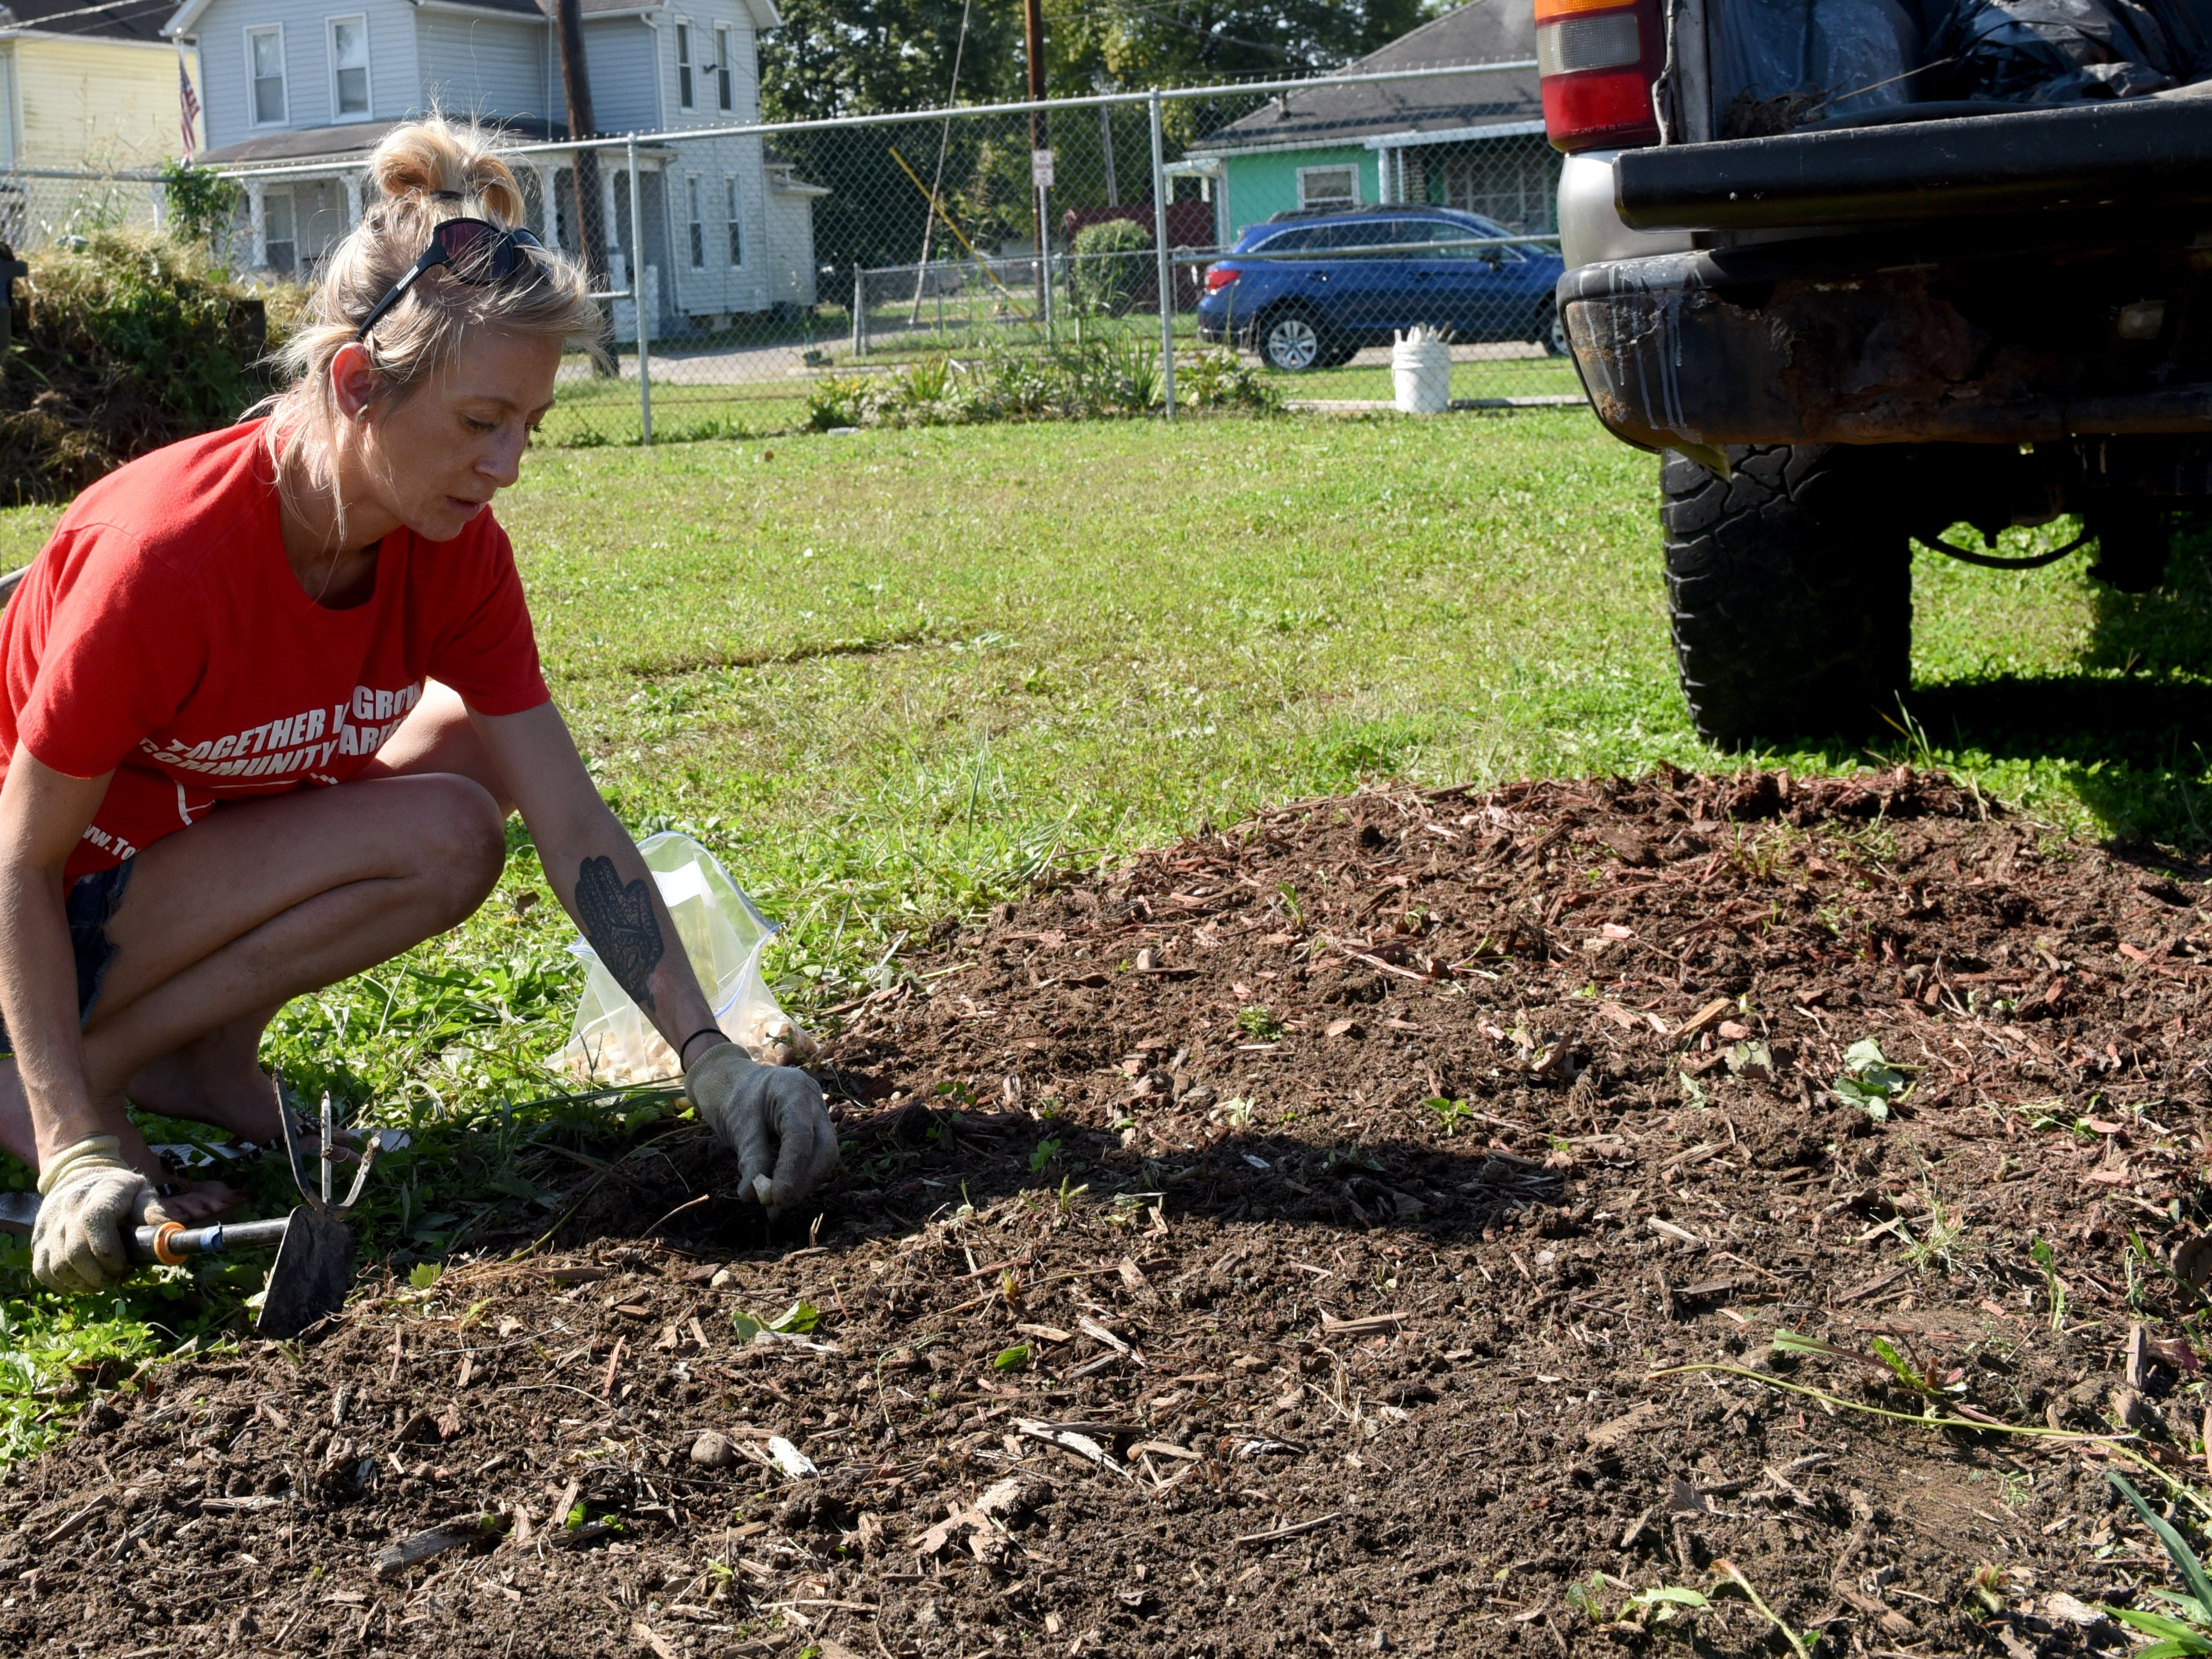 Sarah Thomas, of Together We Grow Gardens, demonstrates to Park National Bank employees how to plant garlic at the garden on East Main Street in Newark. Bank employees volunteered at the garden to prepare it for winter as part of the company's PNB Cares initiative on Monday, Oct. 8, 2018. Employees worked on over 70 projects for organizations in Central Ohio communities. Local projects also included landscaping at the Weathervane Playhouse, organizing books for the Licking County Library, and painting for the Licking County Coalition for Housing.